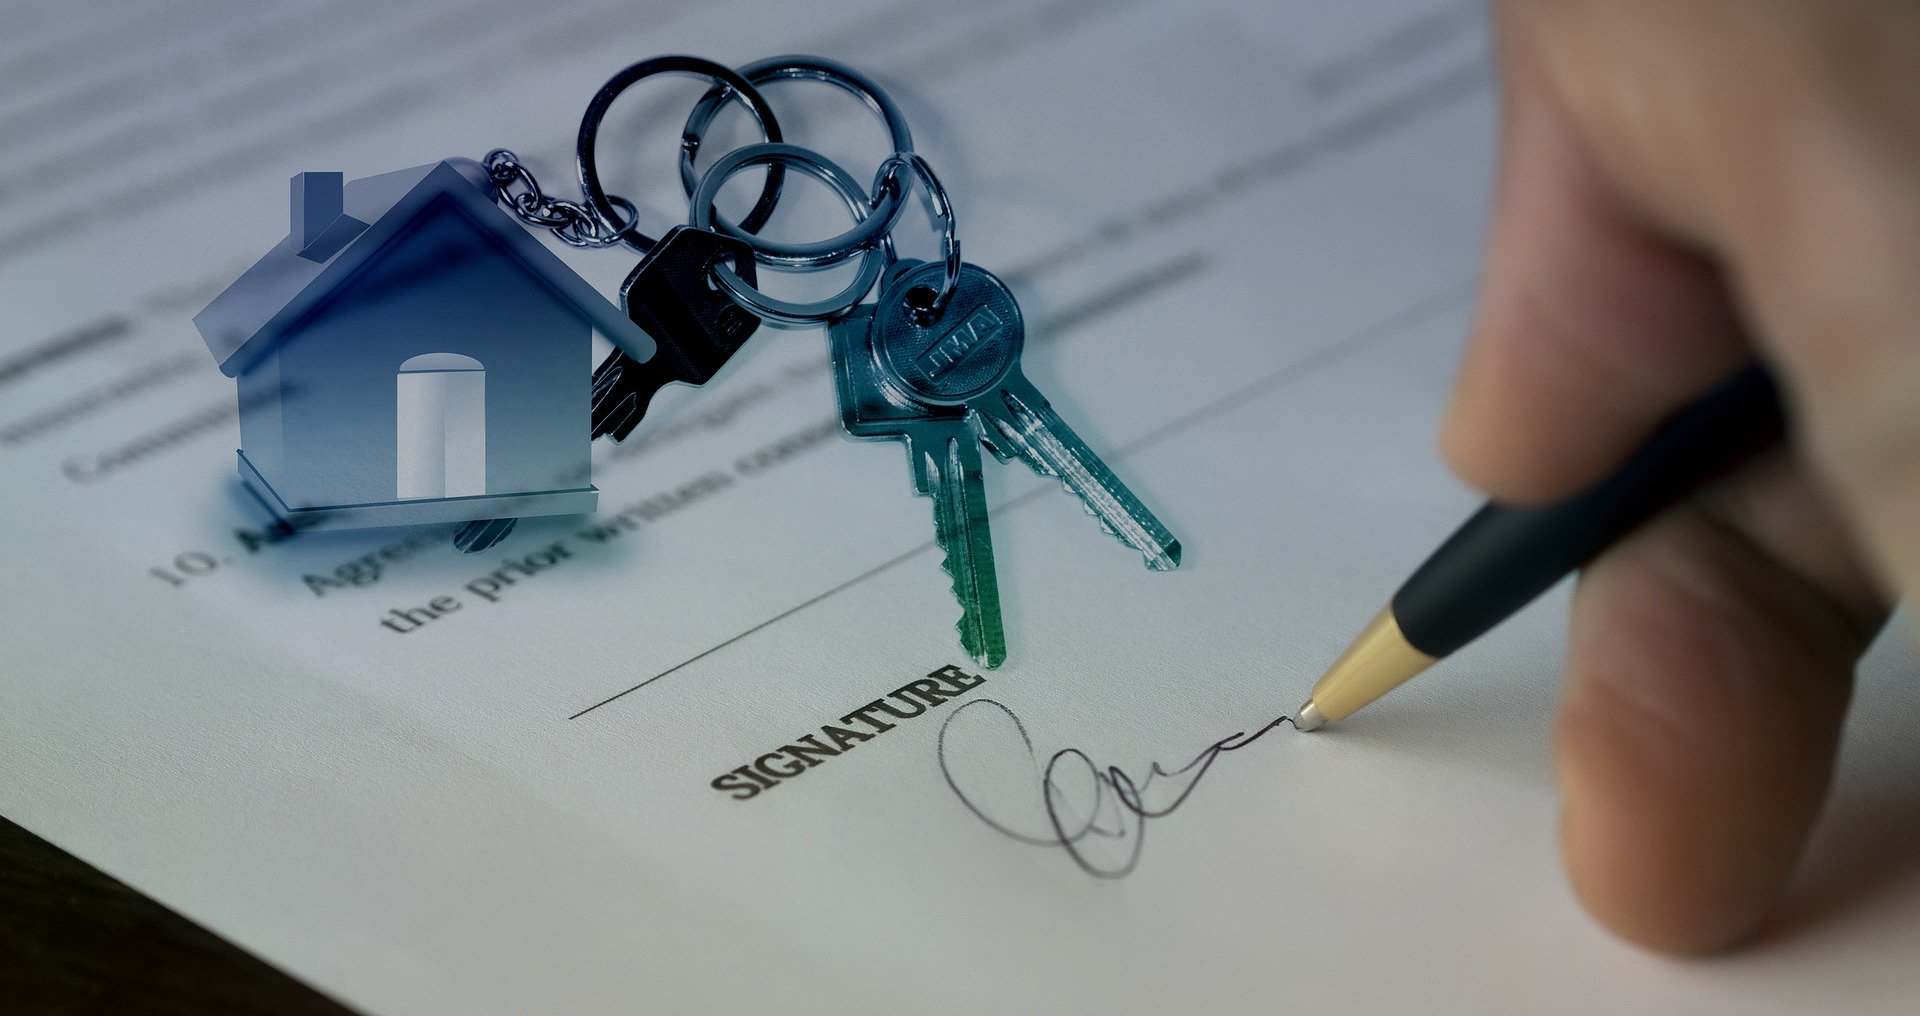 Working out the capital gain on the sale of an investment property